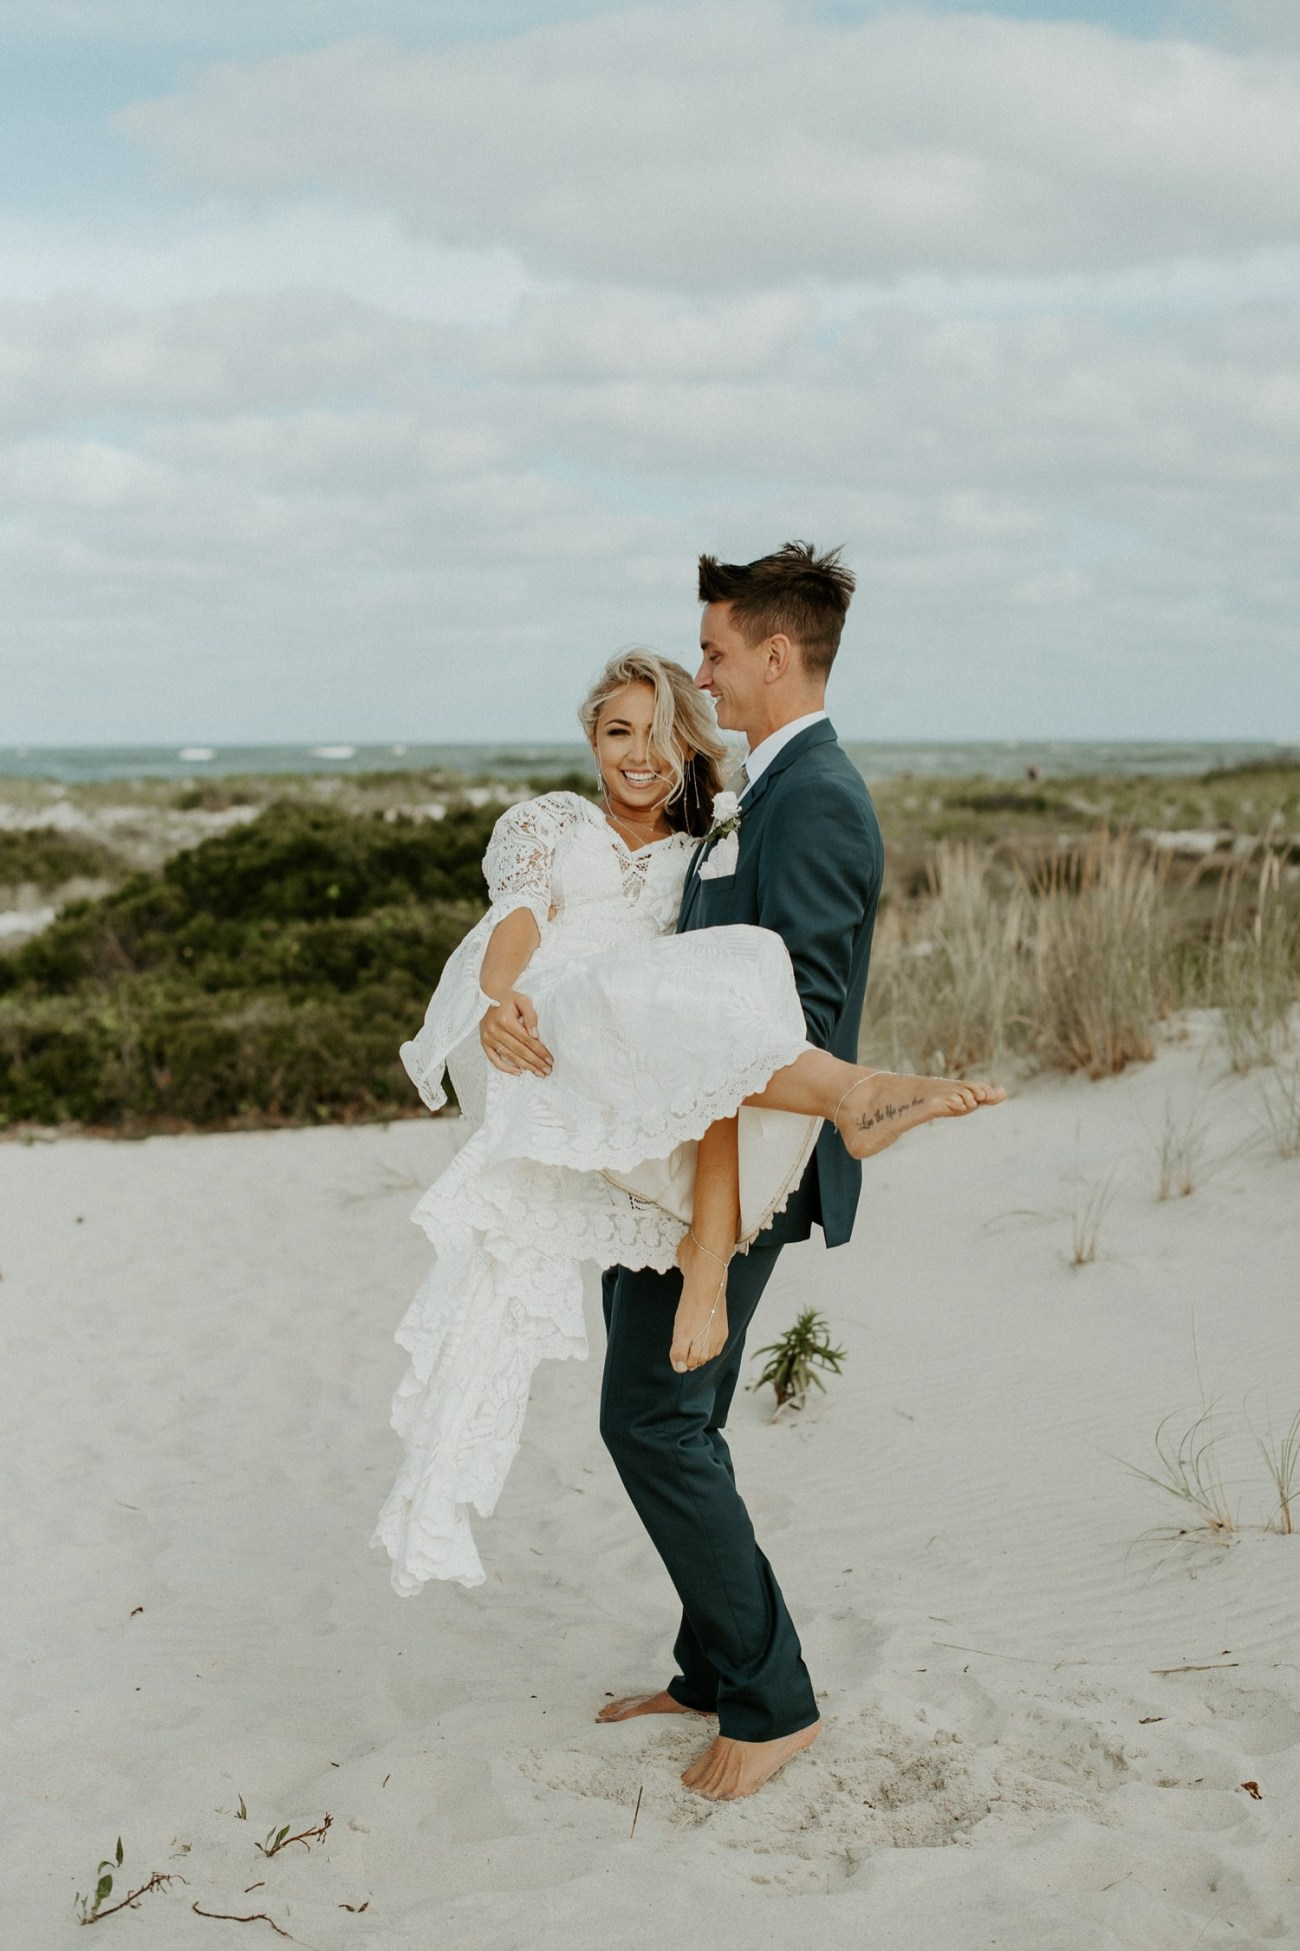 Long Beach Island Wedding New Jersey Wedding Anais Possamai Photography Oregon Wedding Photographer 0056